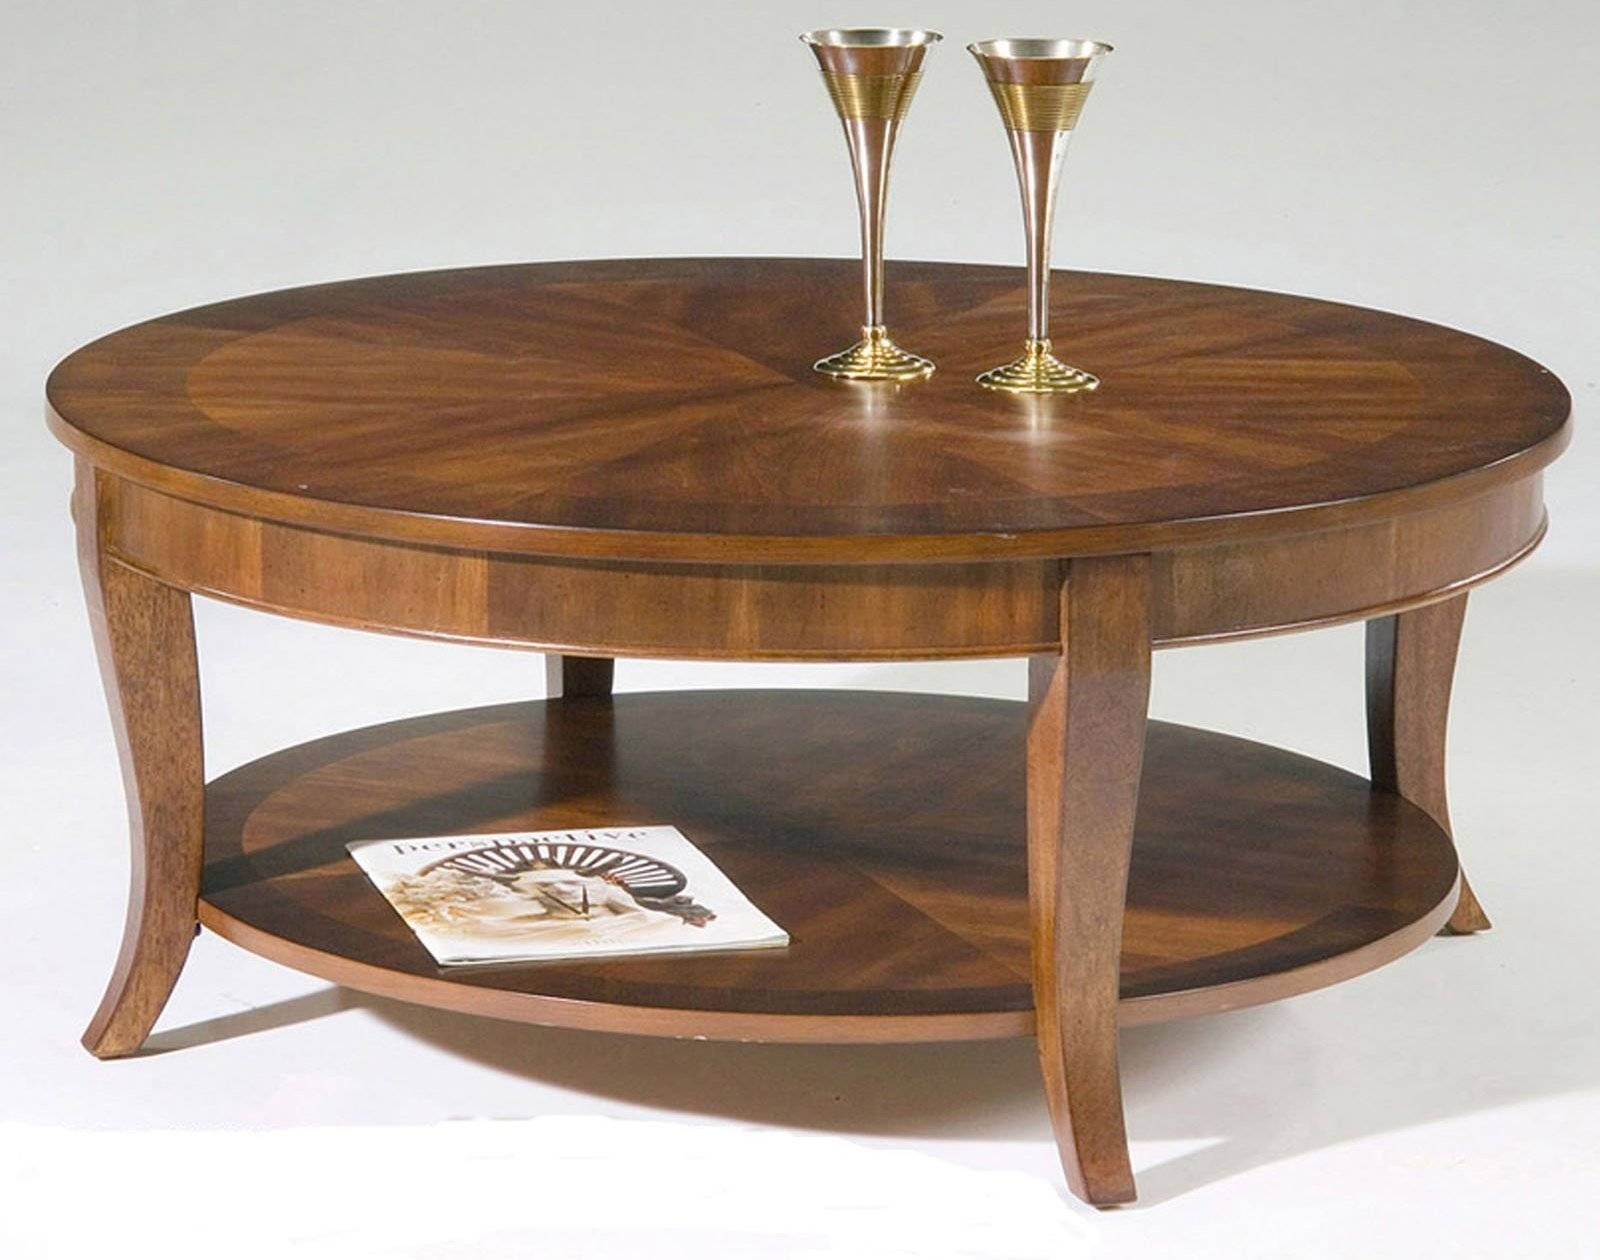 Coffee Table: Simple Round Coffee Table Designs Small Round Coffee For Small Circle Coffee Tables (View 7 of 30)